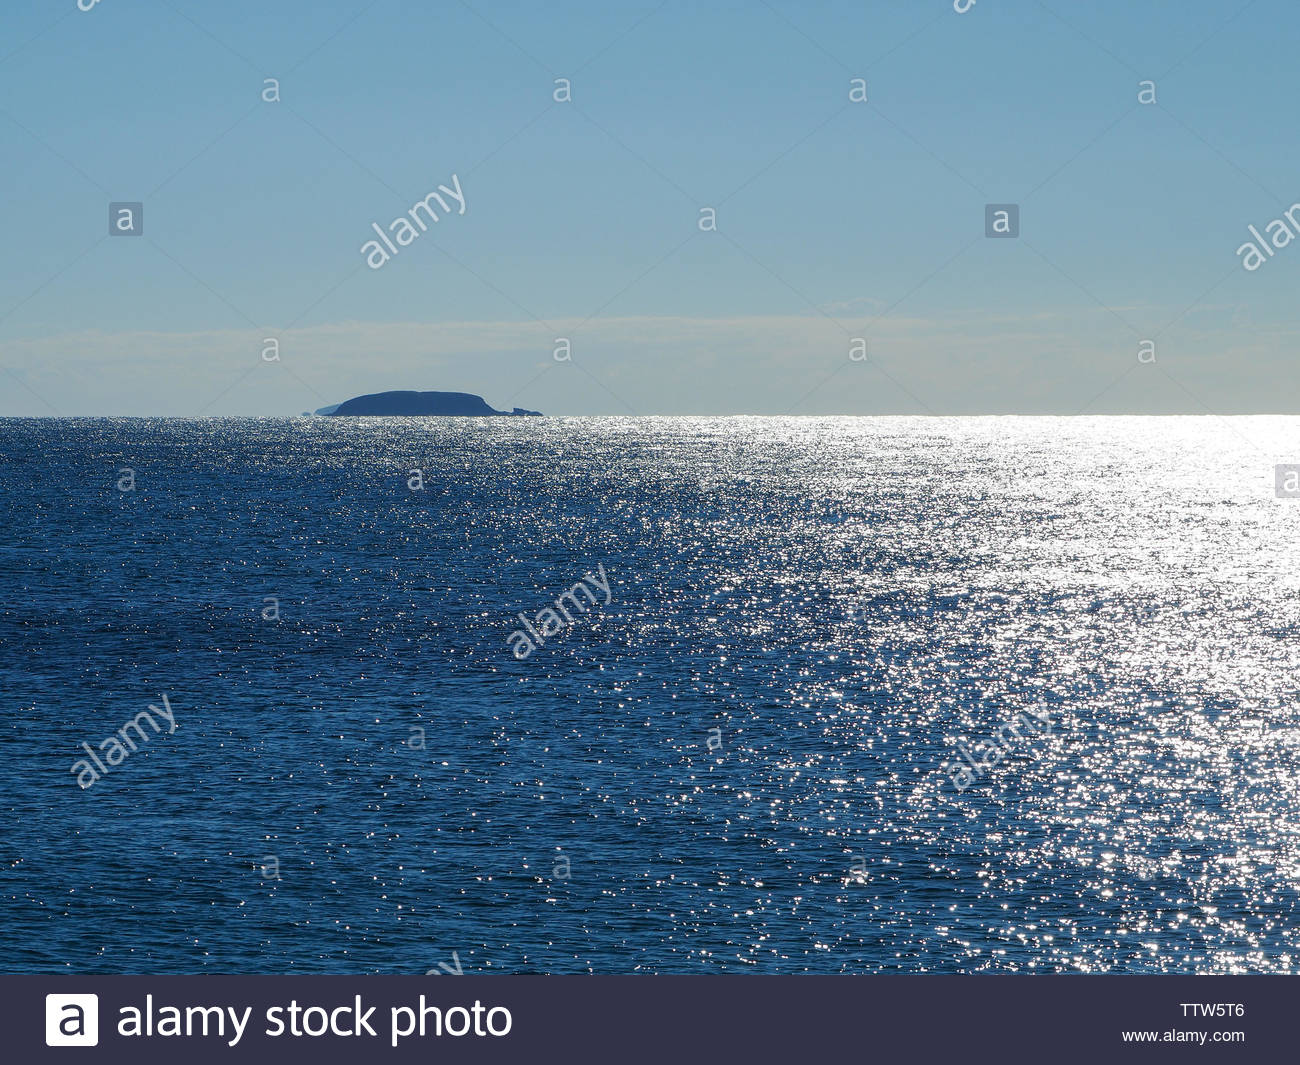 The sparkling blue and white of the Pacific Ocean, Australia - Stock Image